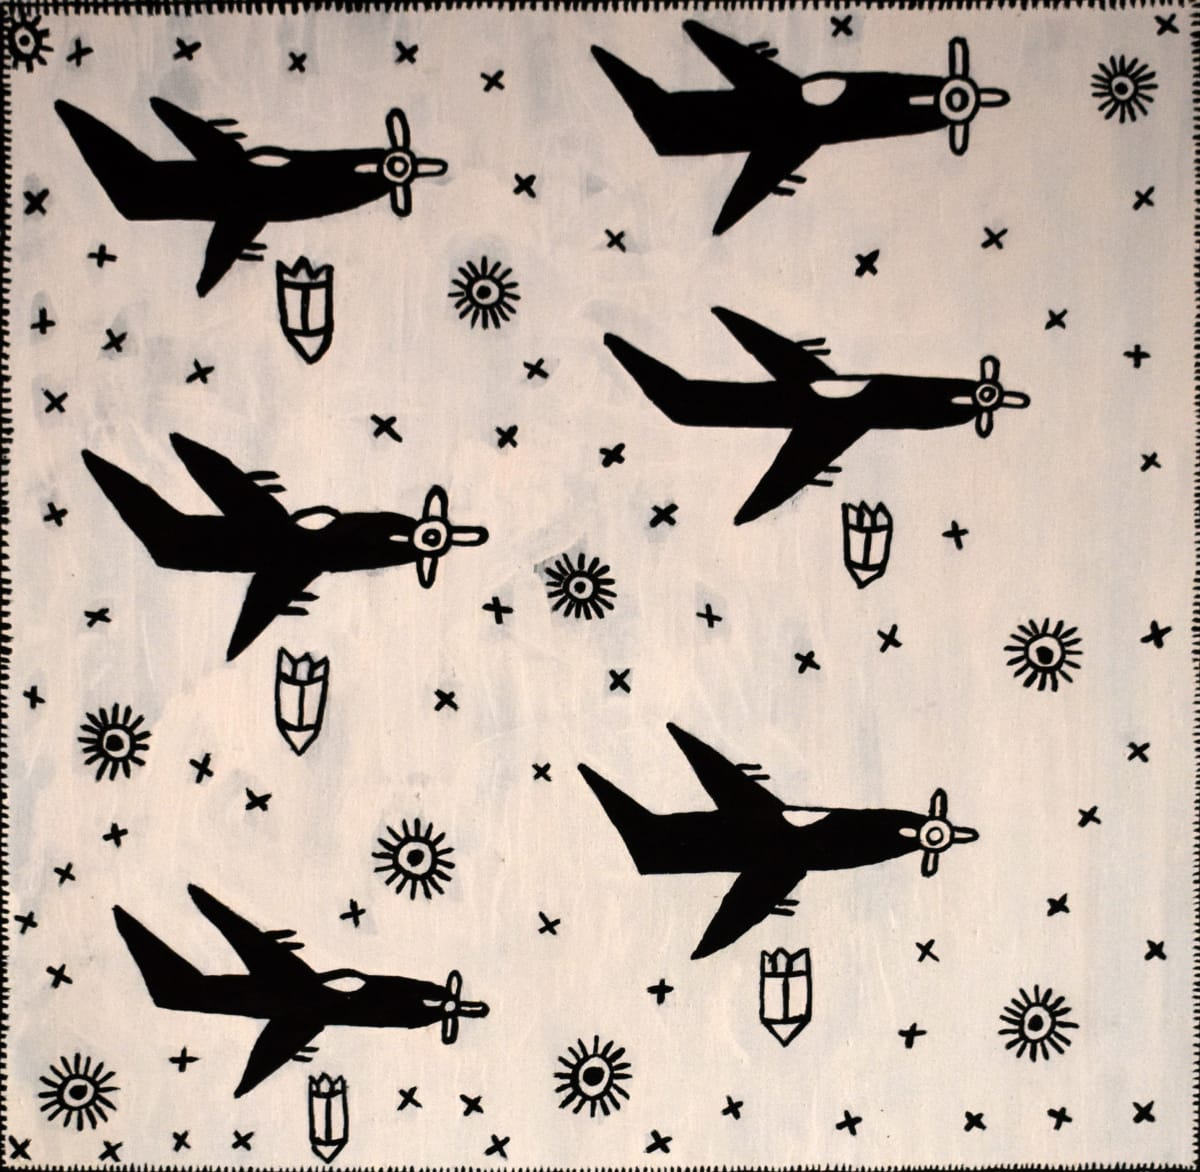 Pauletta Kerinaiua The Bombing of Darwin (Black and White) natural ochres on linen 70 x 70 cm